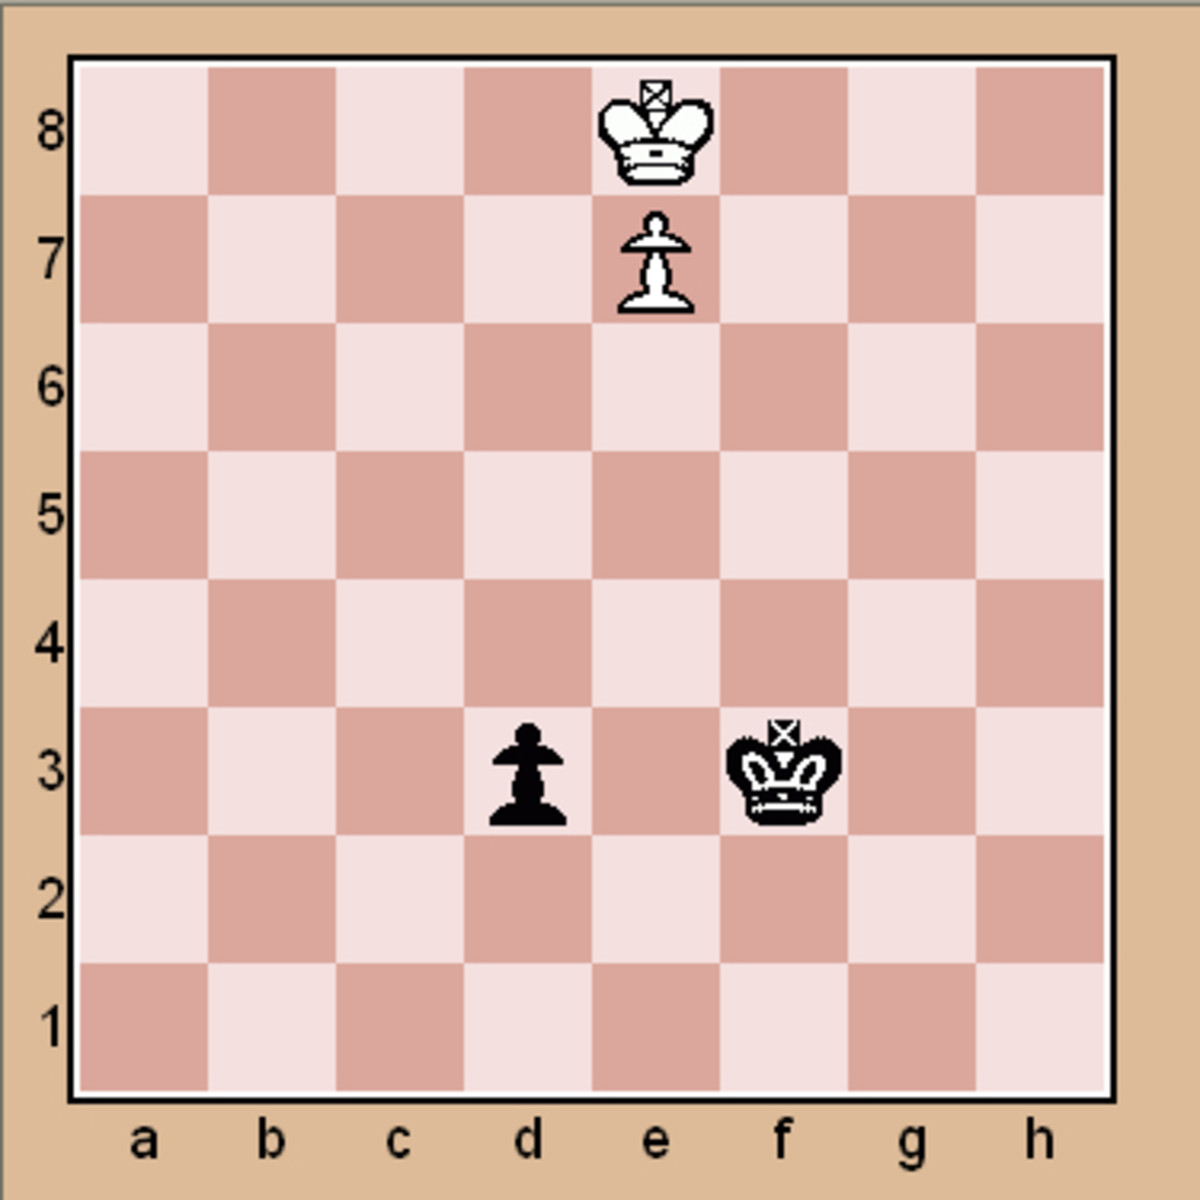 Chess end game puzzle #2 (Click to enlarge)